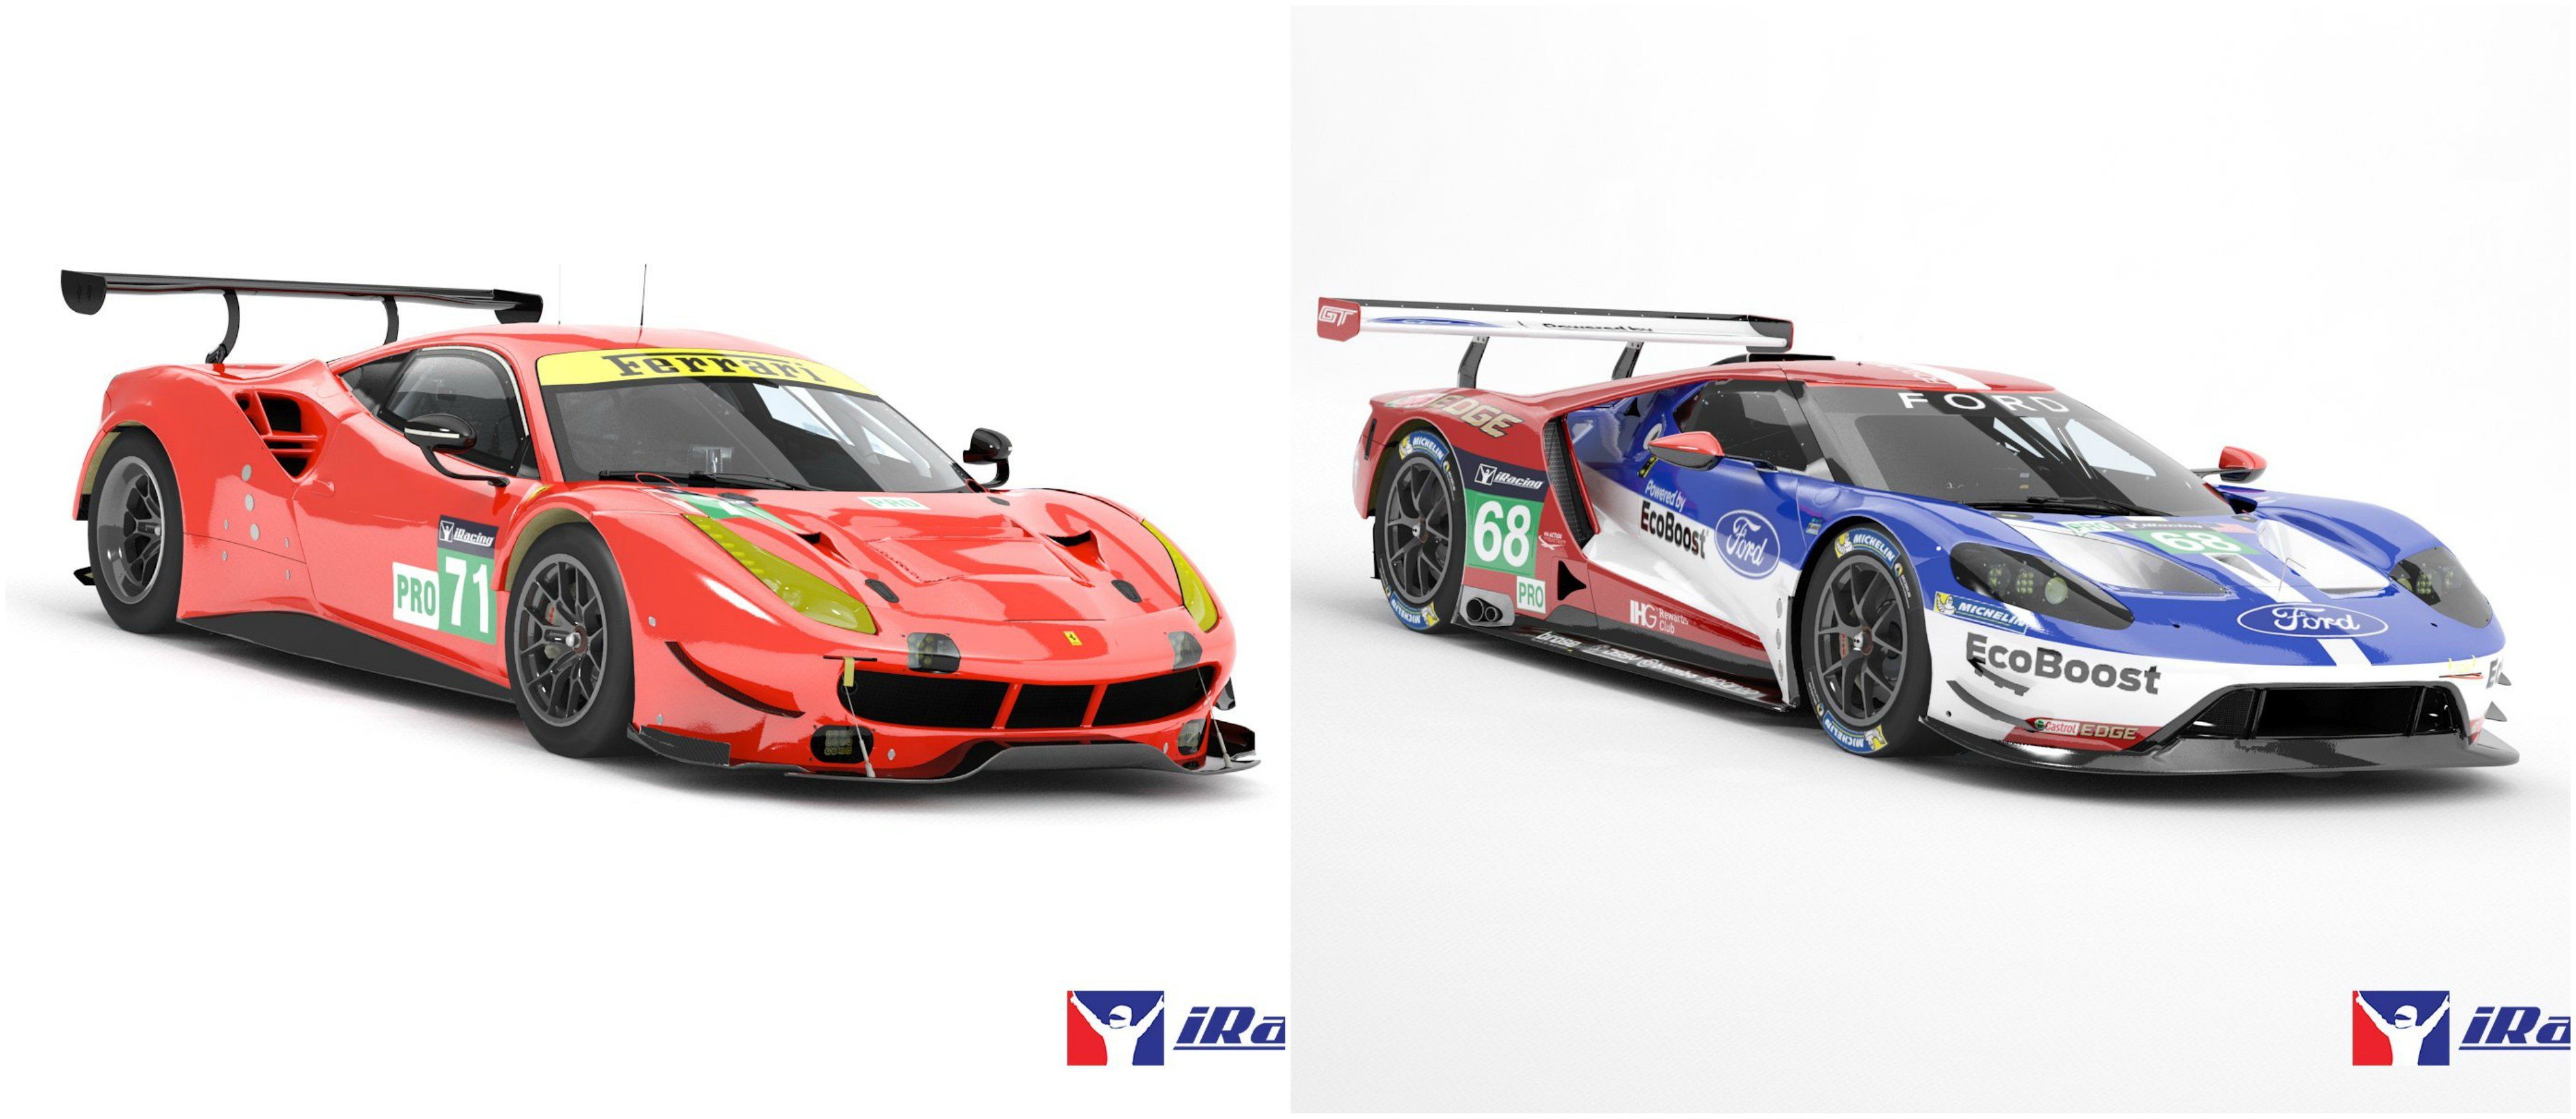 iRacing Ferrari 488 GTE and Ford GT LM GTE-PRO